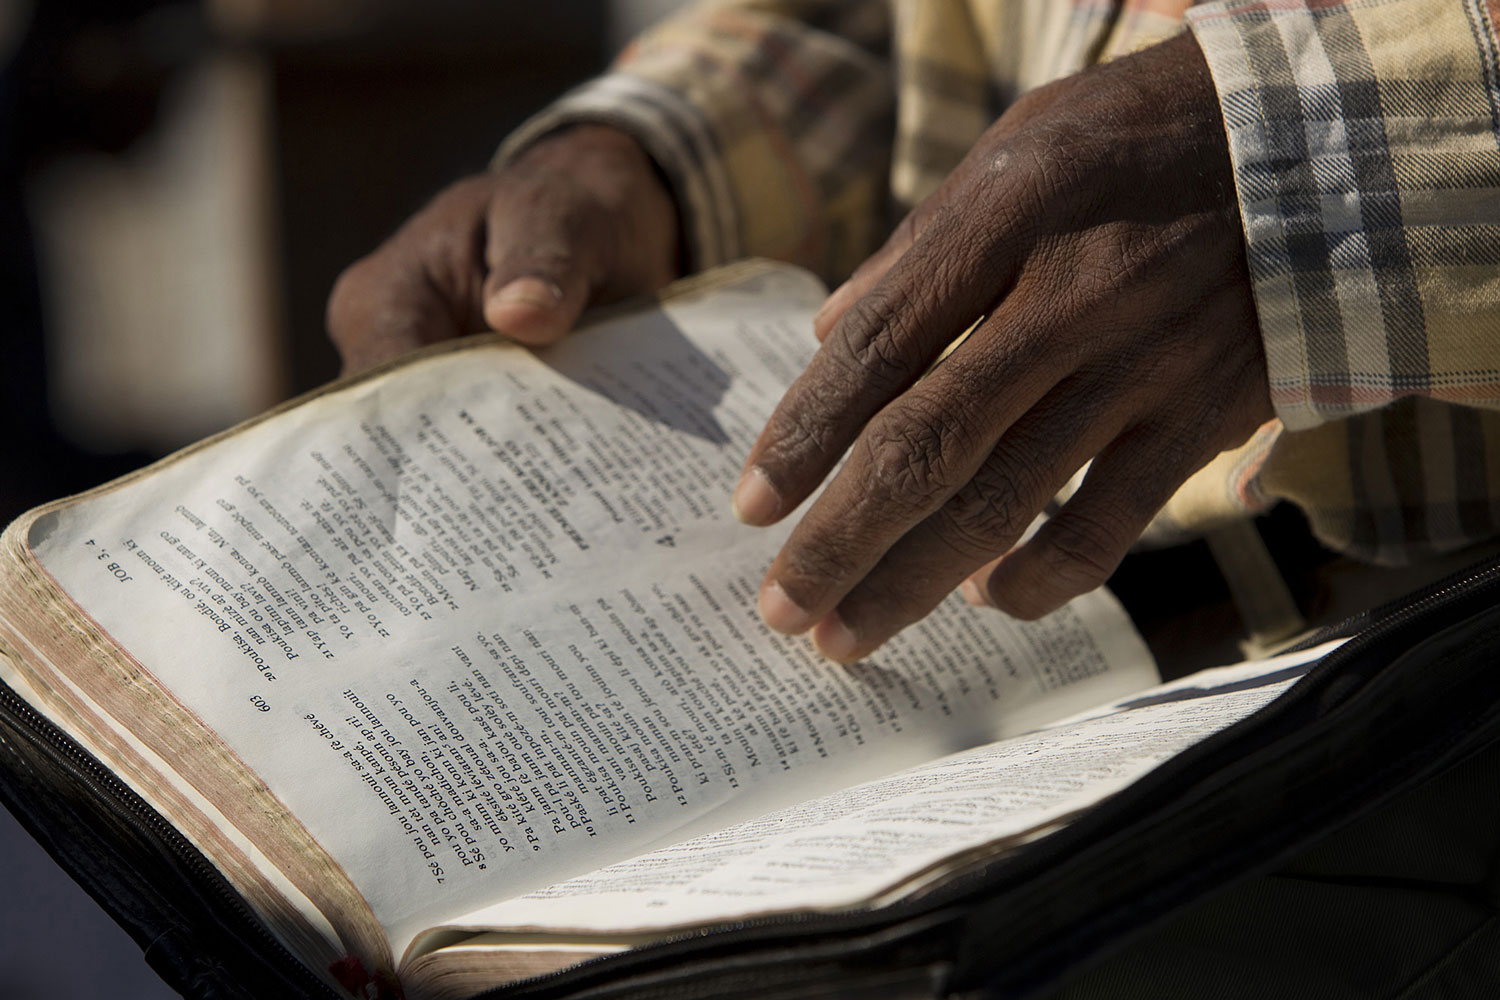 We learn God's voice through studying the scriptures.